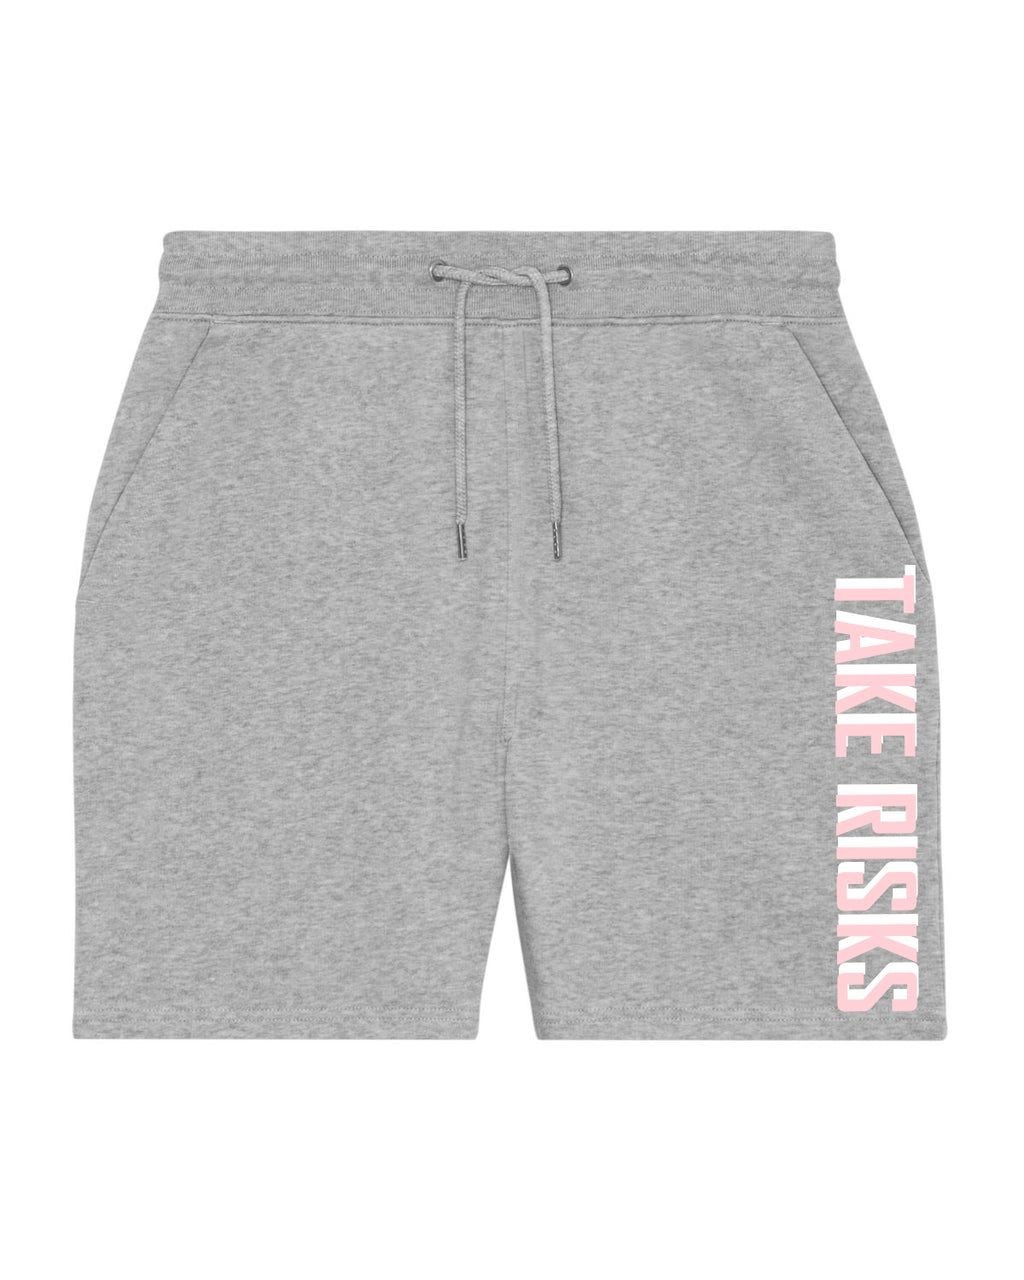 Take Risks Pink/Grey Statement Shorts